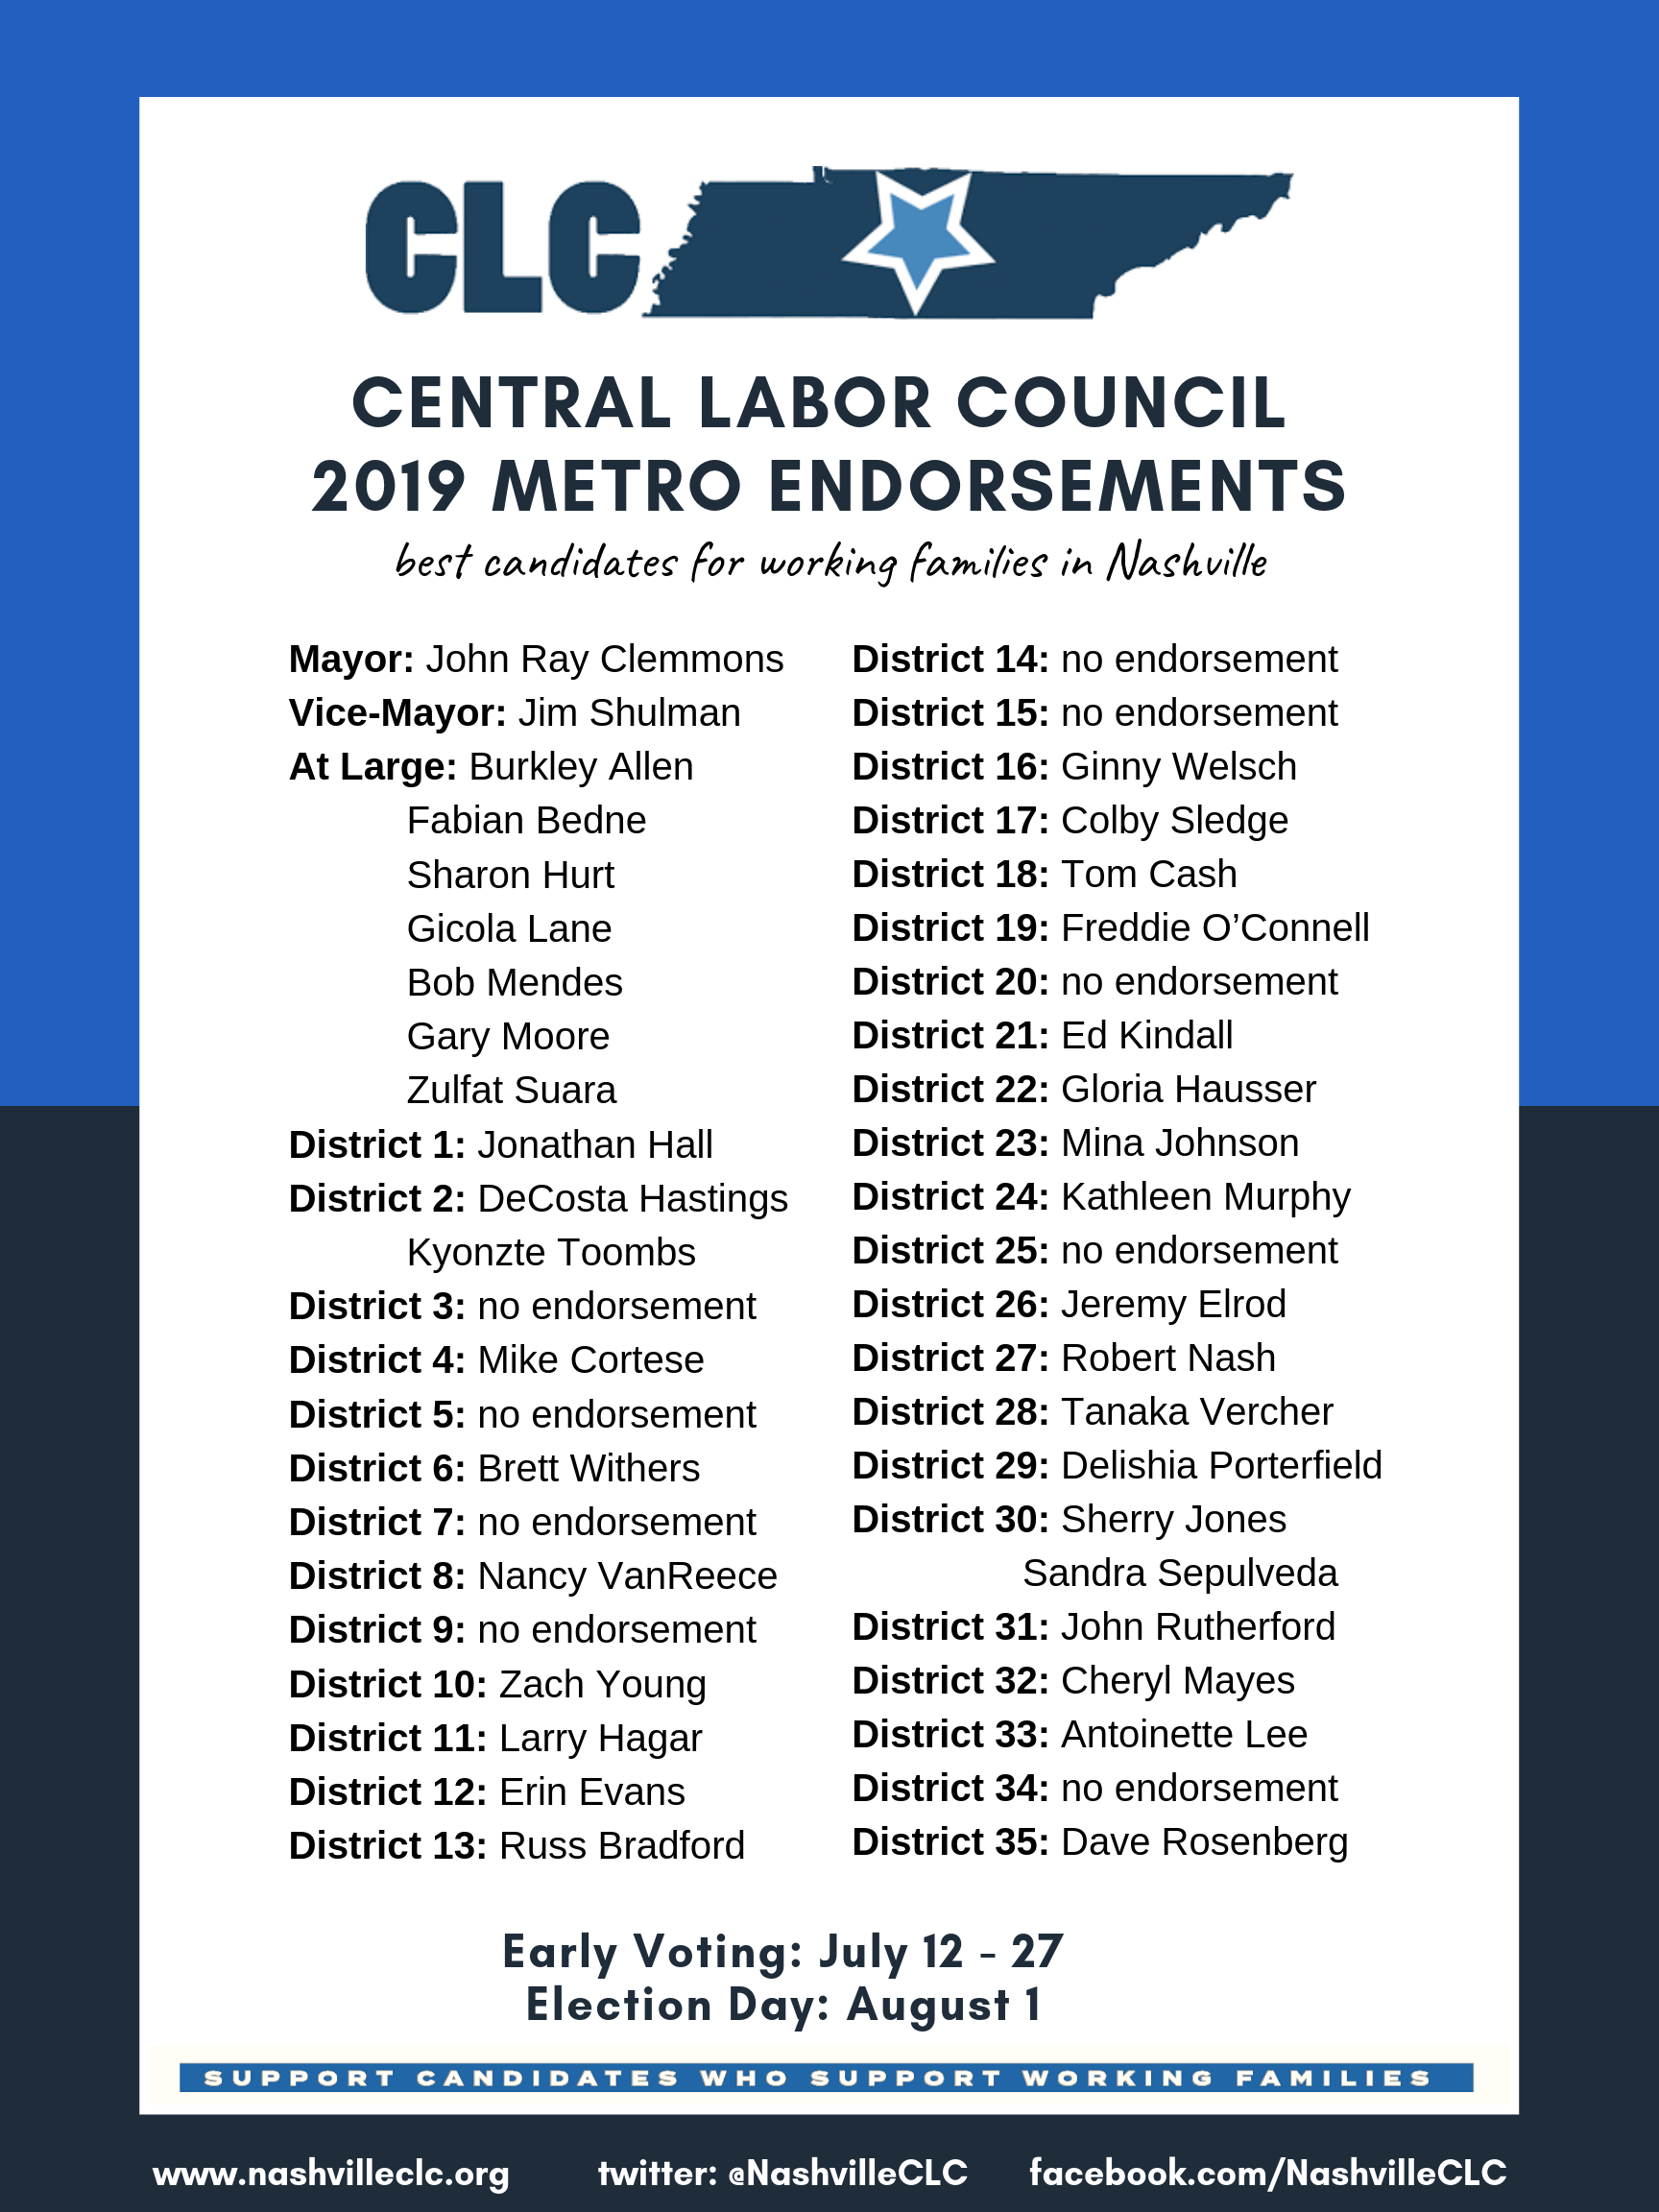 CENTRAL_LABOR_COUNCIL_2019_METRO_NASHVILLE_ENDORSEMENTS.png